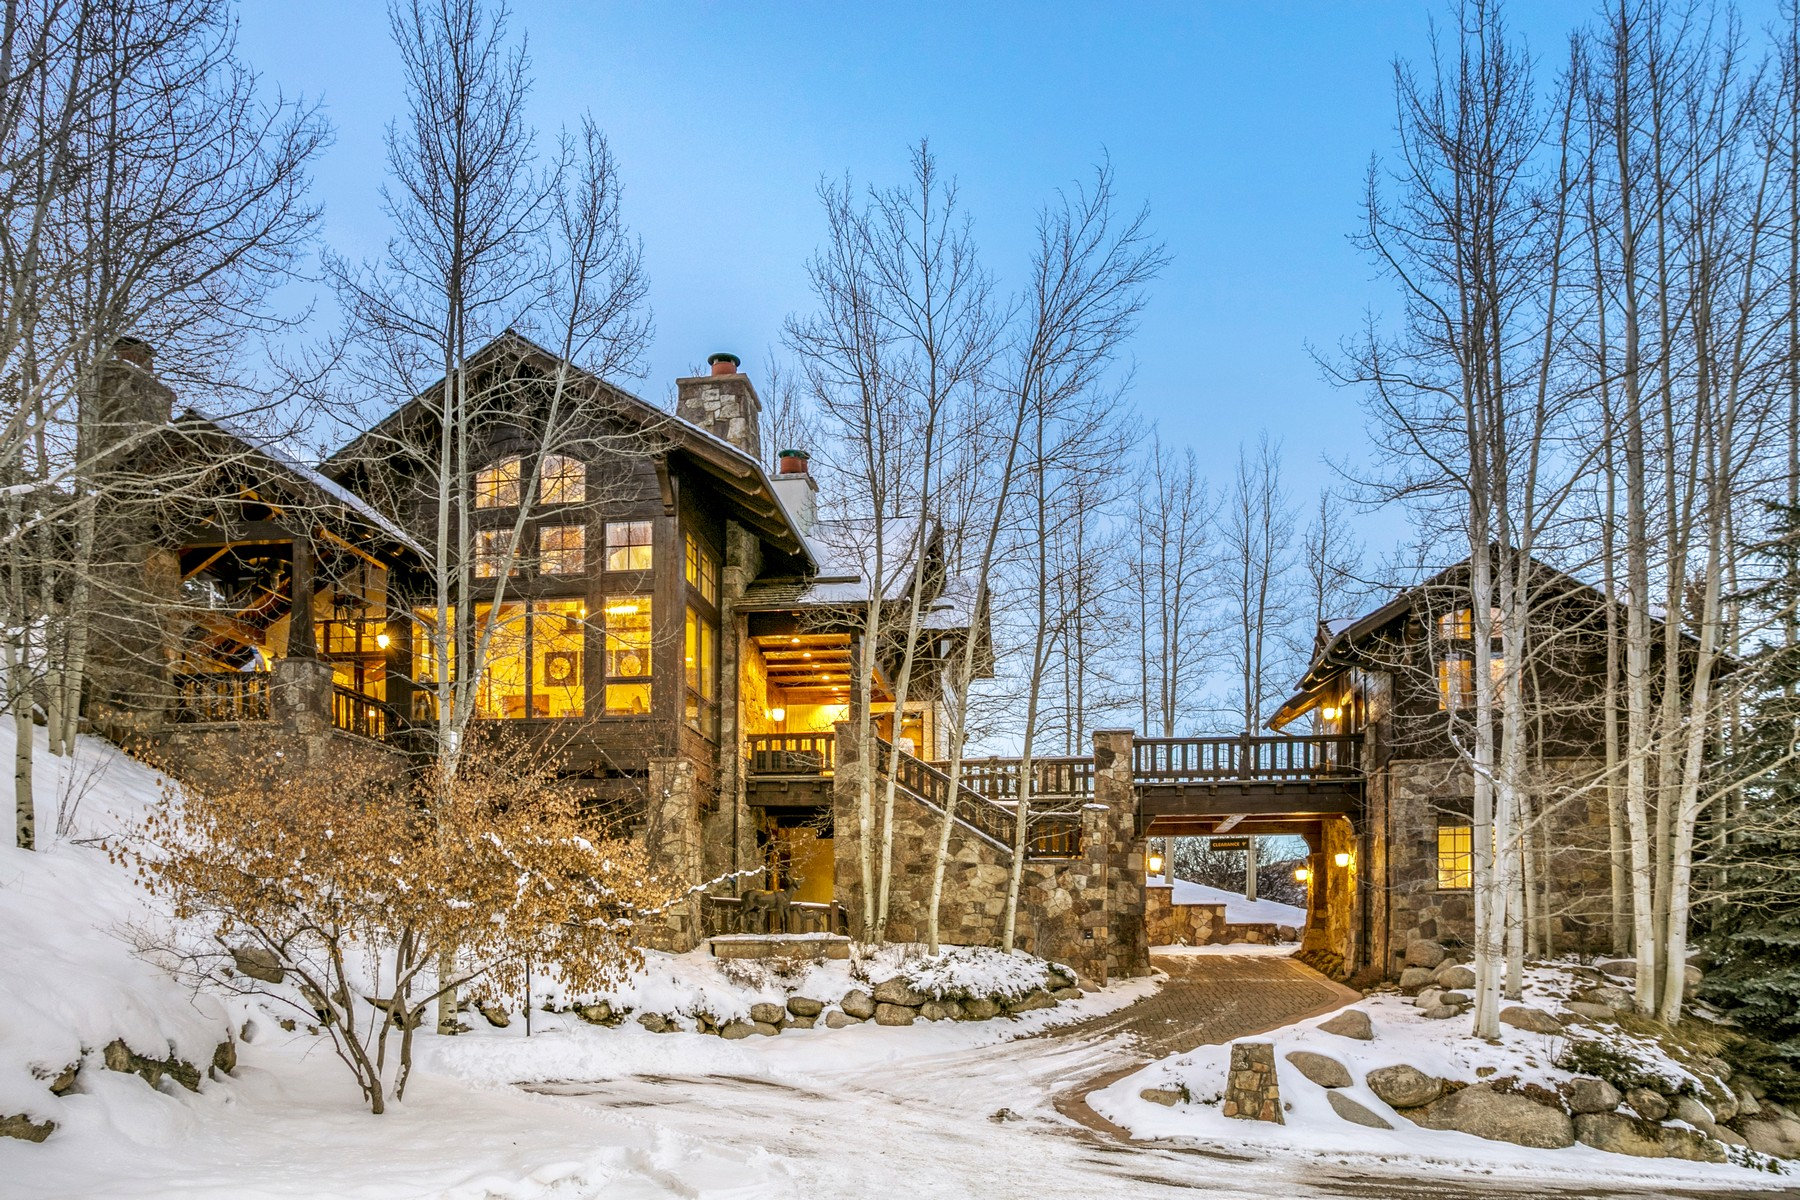 Single Family Home for Active at Positioned high above its neighbors on a premium lot 72 Highline Drive Beaver Creek, Colorado 81620 United States